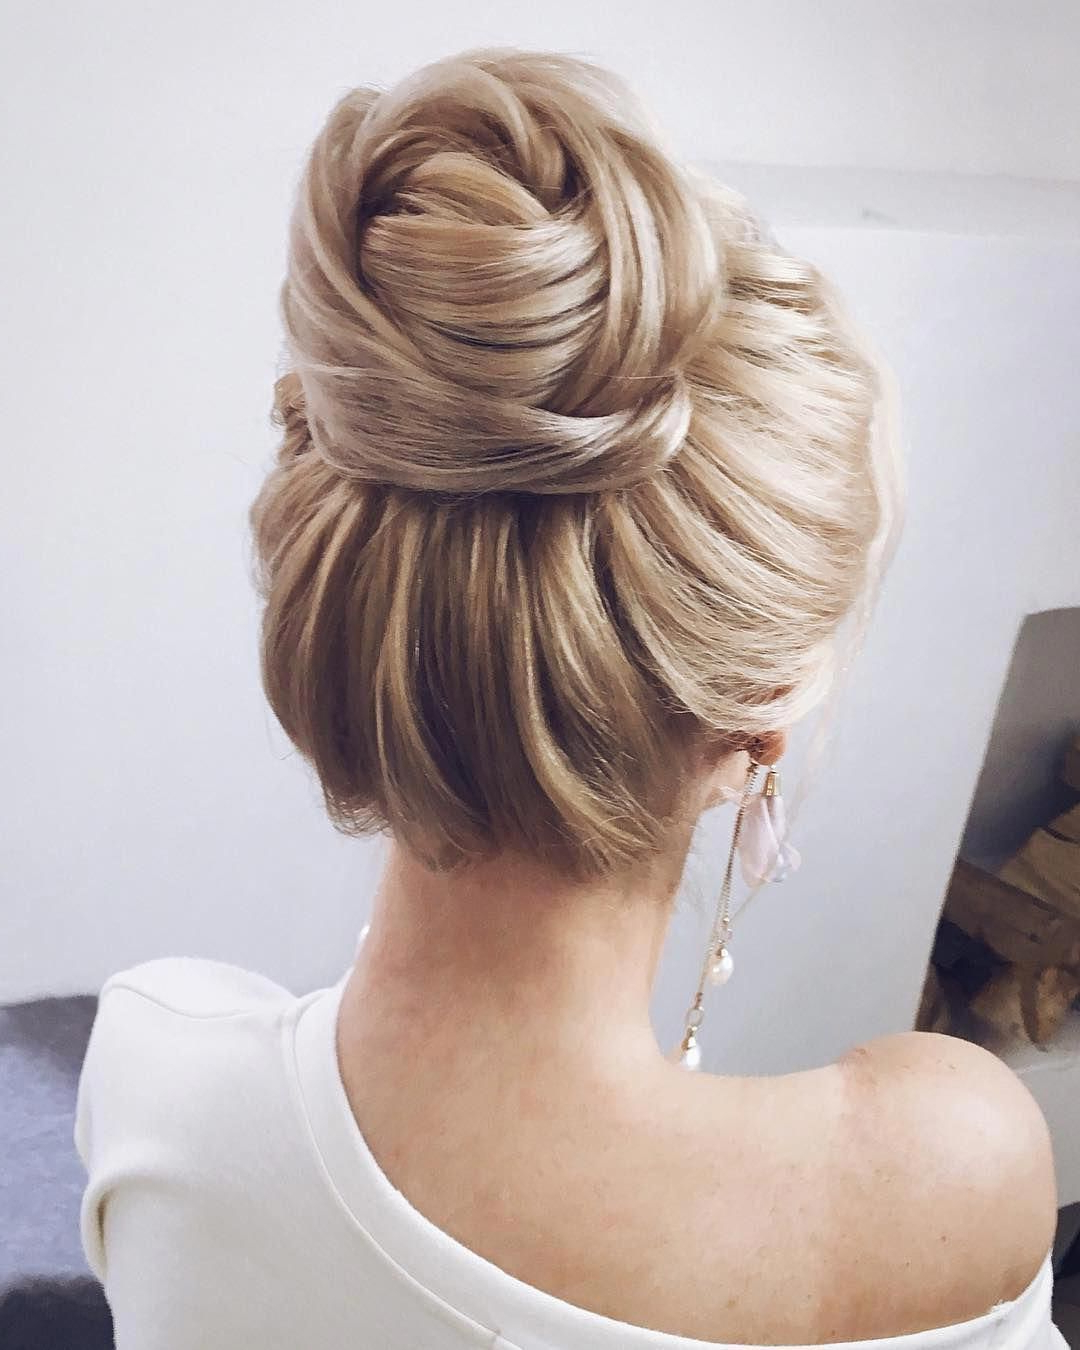 Textured Wedding Updo Hairstyle ,messy Updo Wedding Hairstyles Throughout Best And Newest Complex Looking Prom Updos With Variety Of Textures (View 15 of 20)